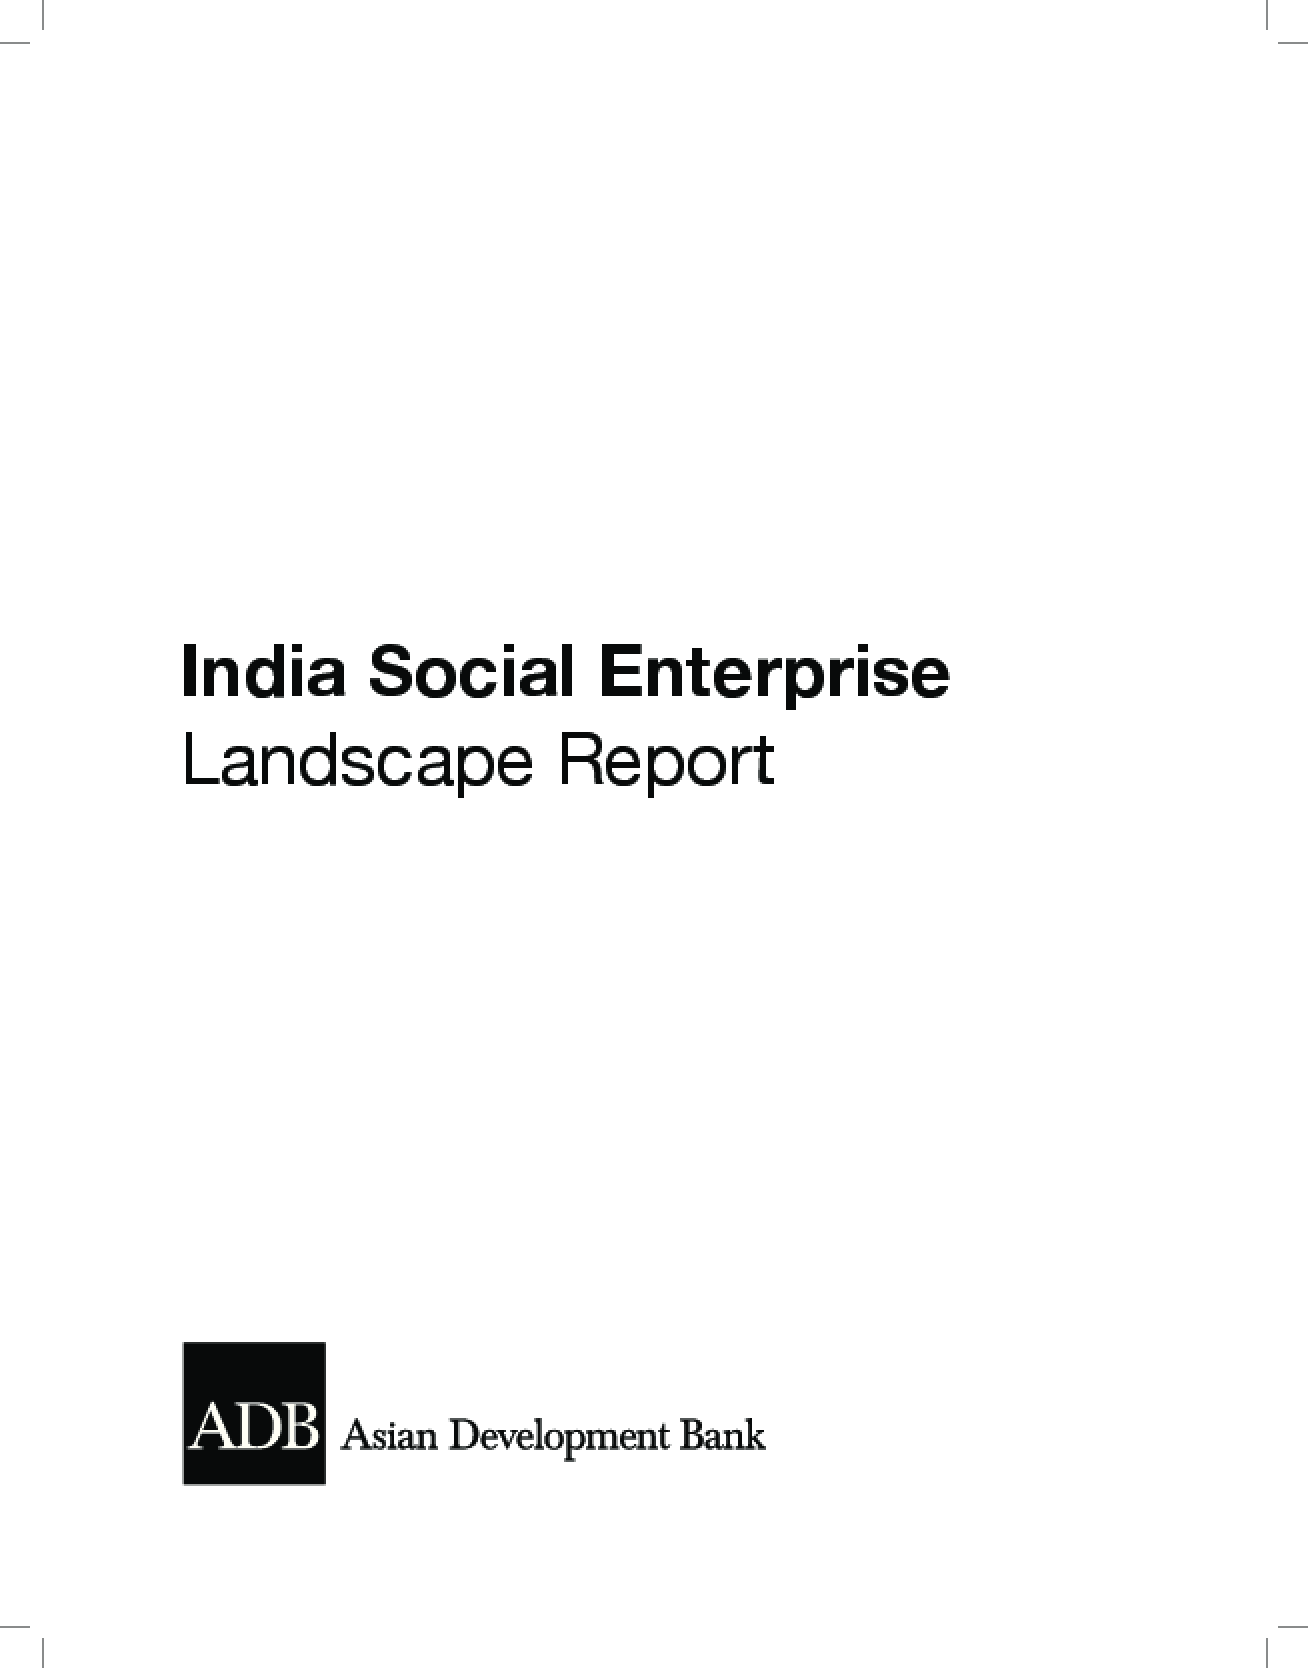 India Social Enterprise Landscape Report